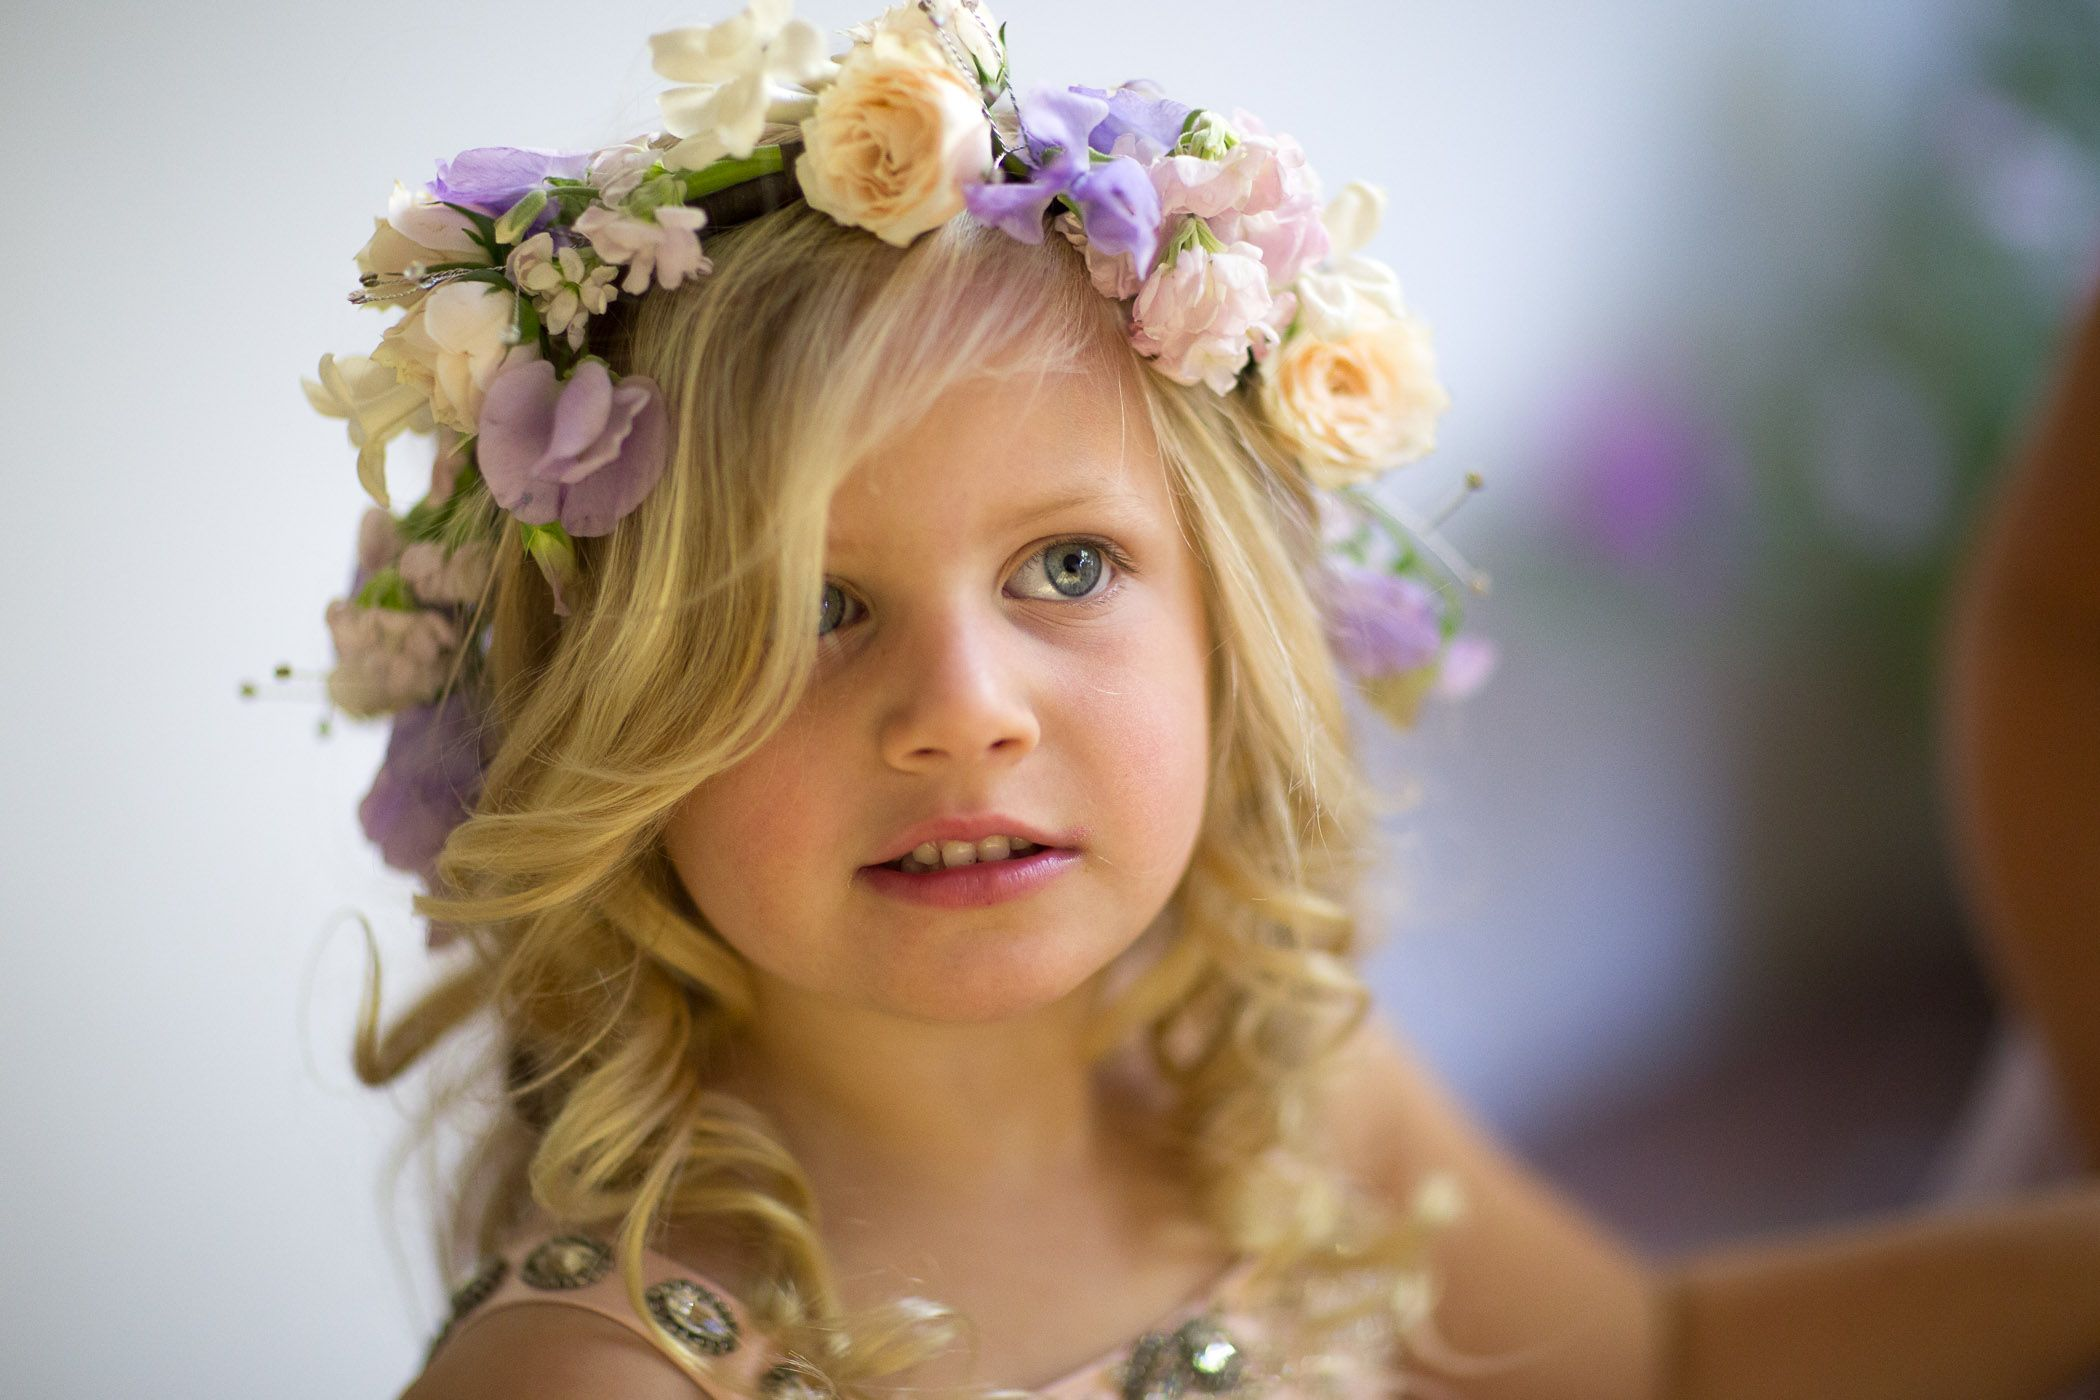 This sweet flower girl donned a floral crown for a Santa Barbara wedding. Event Design By Merryl Brown Events